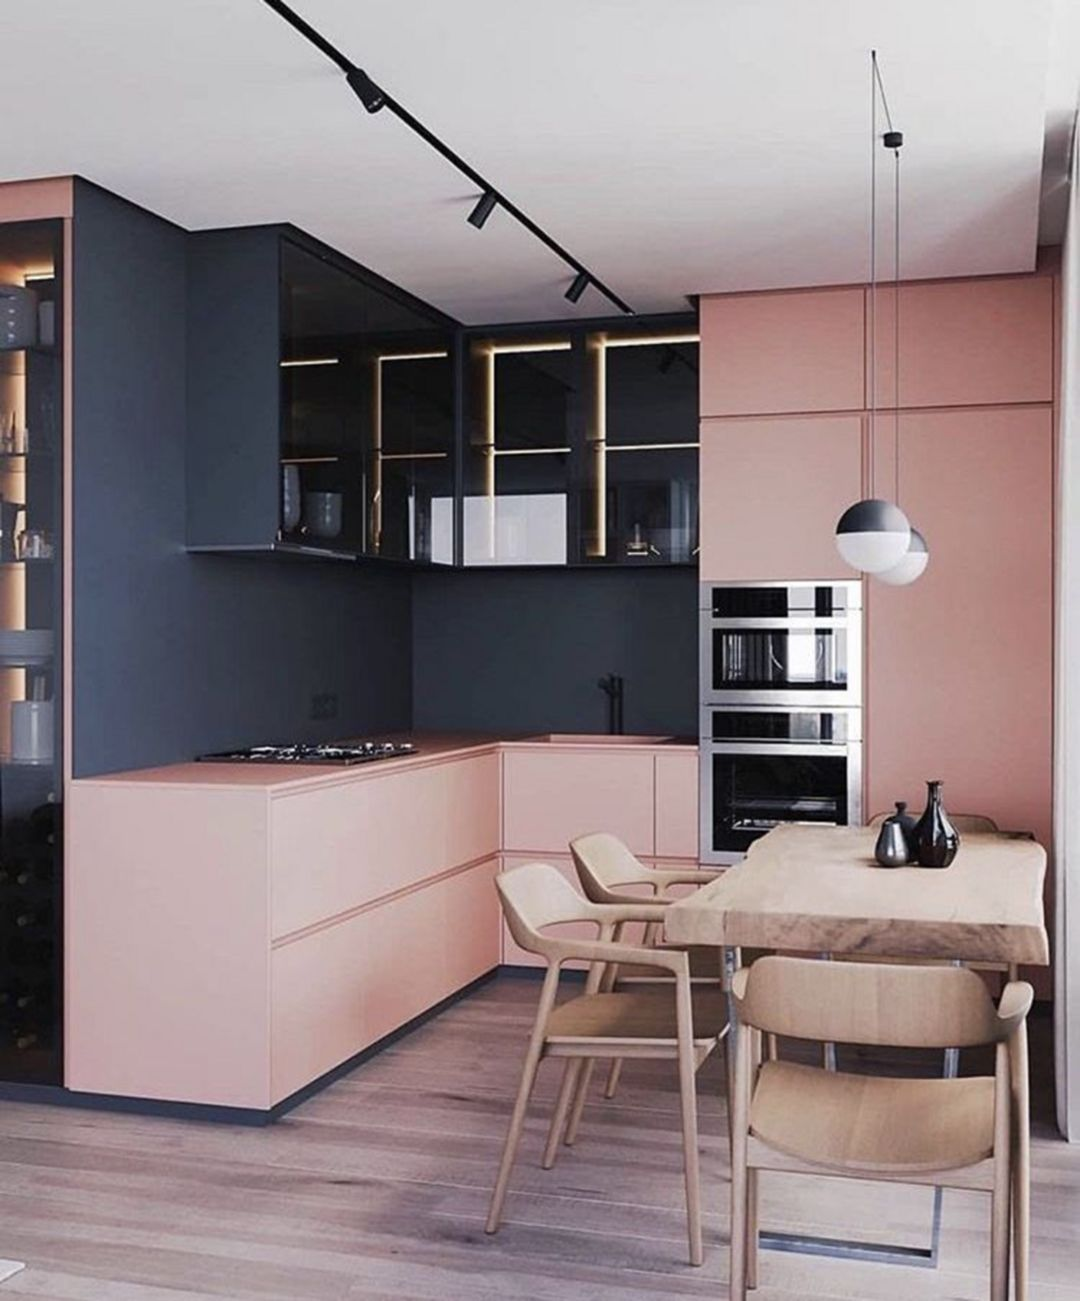 Epic romantic pink kitchen color scheme you have to know https also amazing interior design remodel if  ve the small rh pinterest